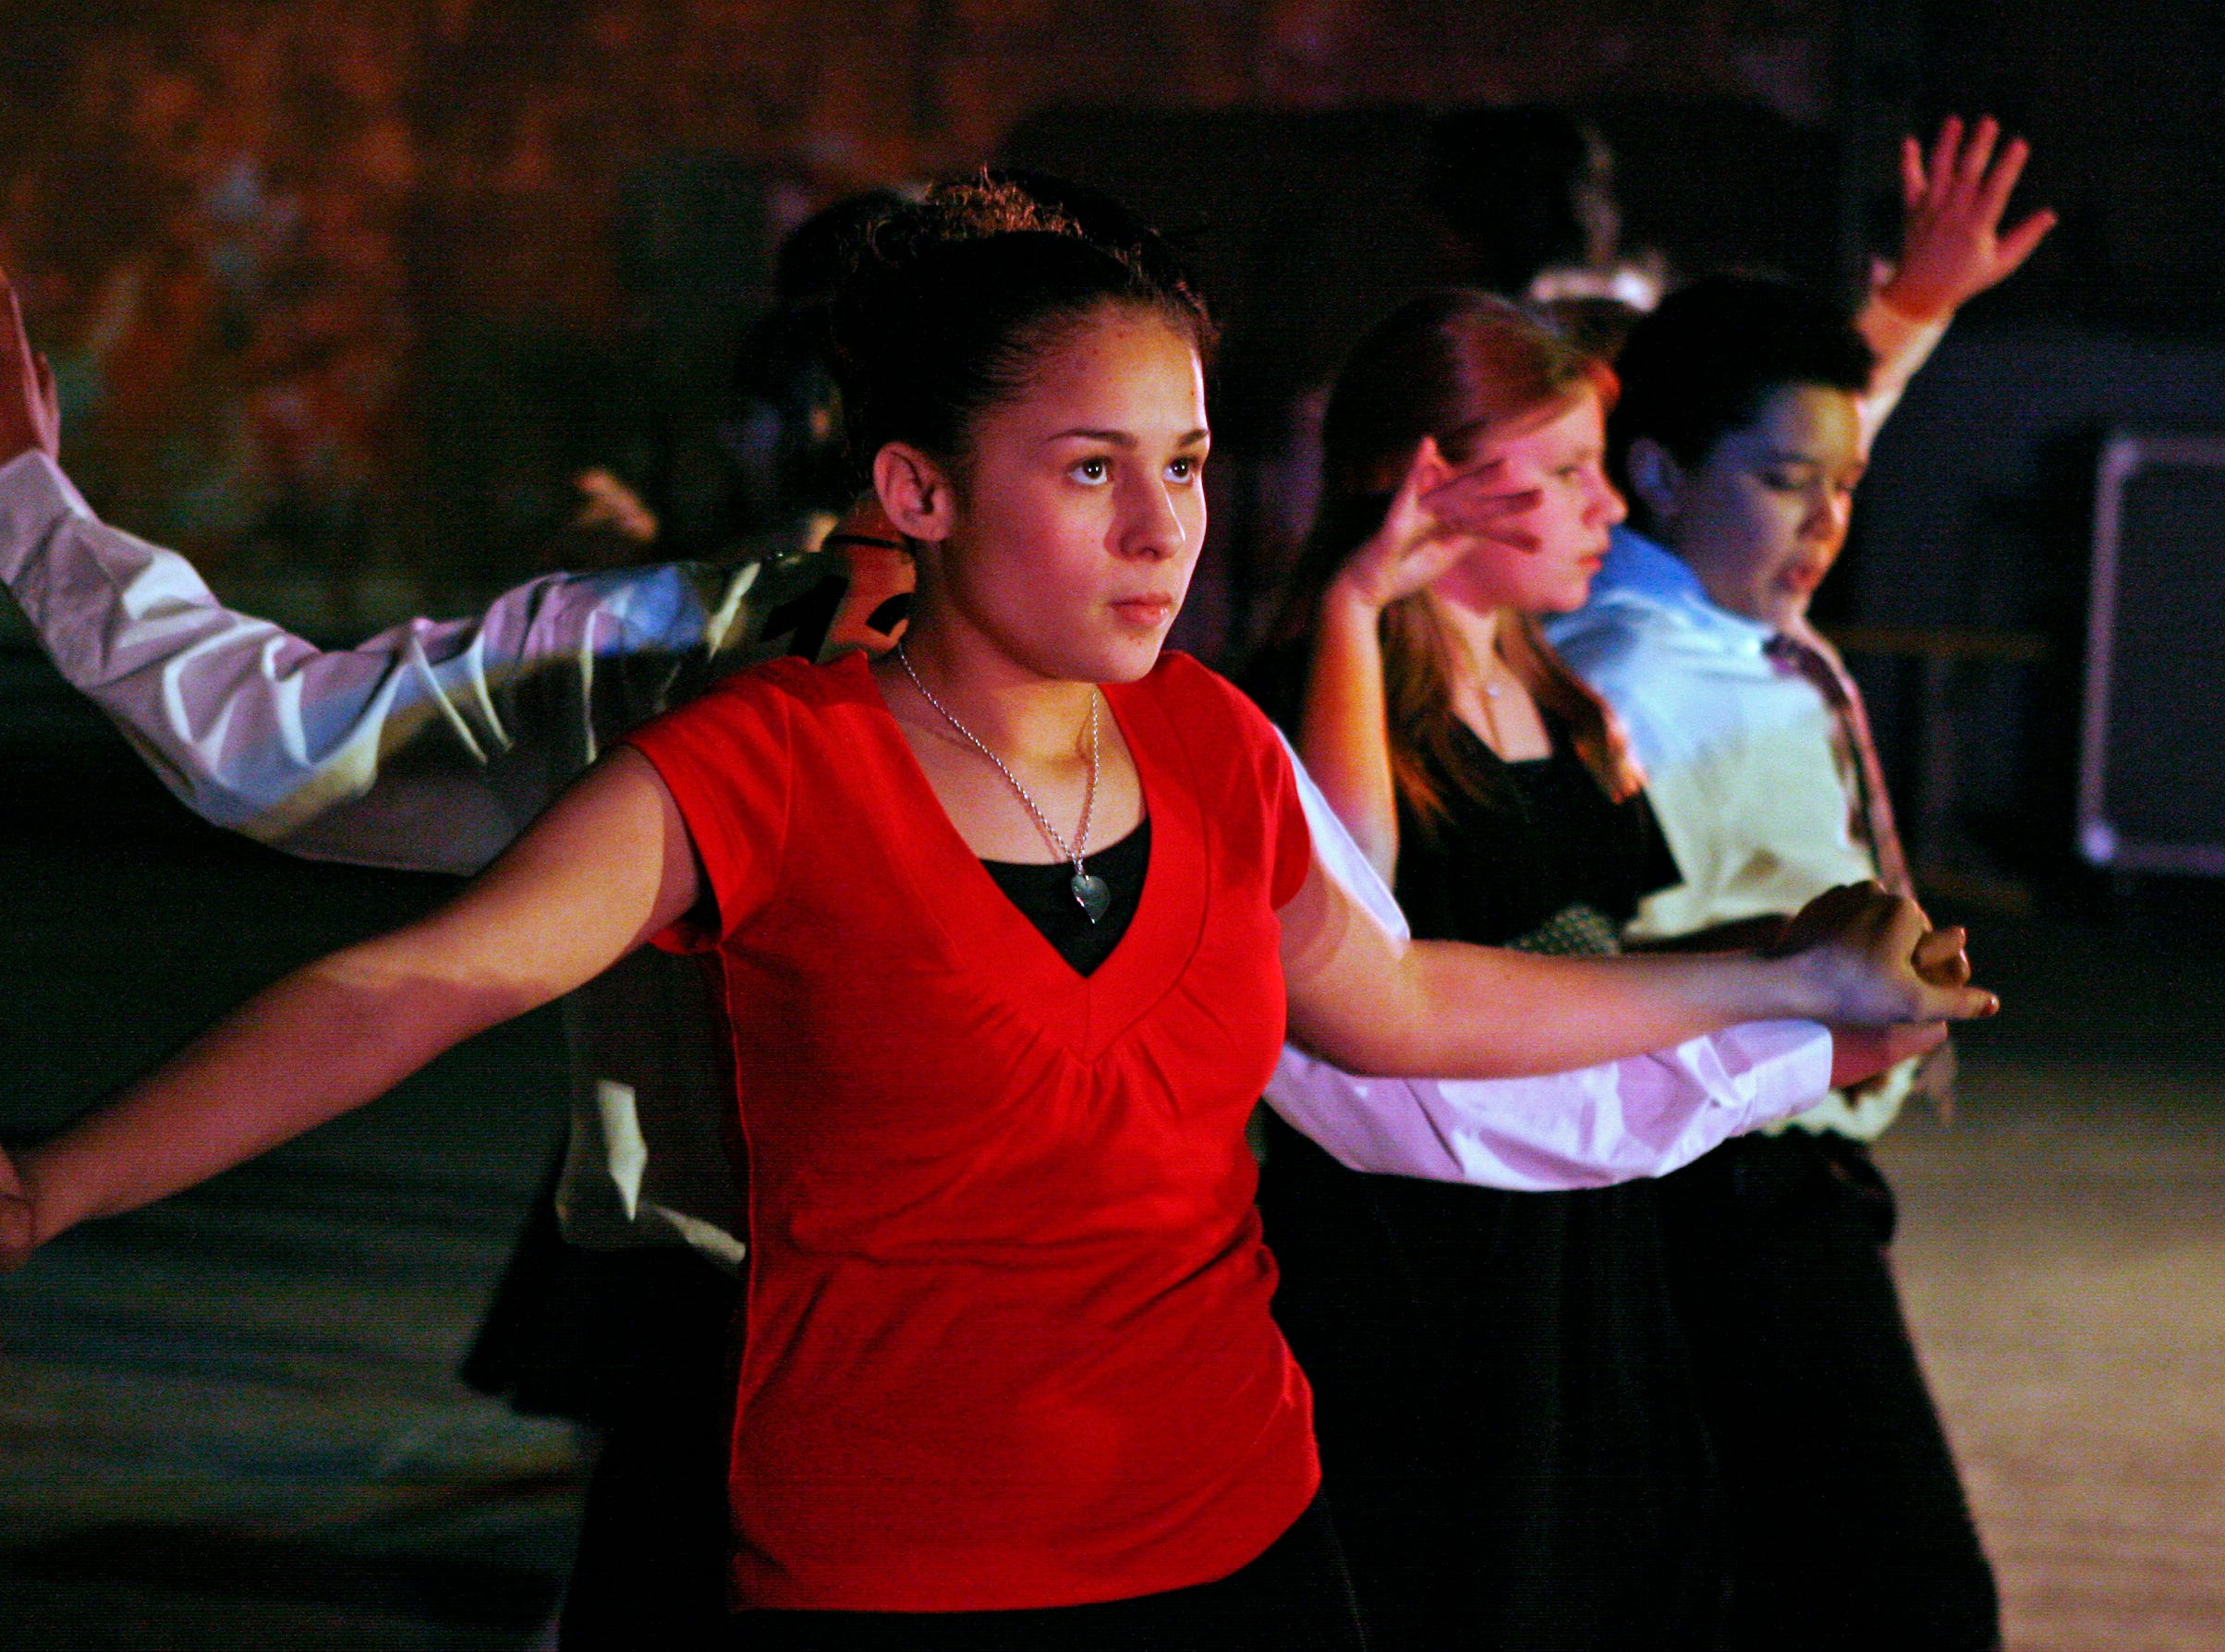 2007: Vieau Elementary 6th graders Charleen Garcia and her partner Miguel Ramirez dance the Rumba at Turner Hall on Jan. 17, 2007.  Nearly 300 students participated in a showcase (tap-dancing) and competition (ballroom dancing) as part of the pilot Mad Hot Ballroom competition.